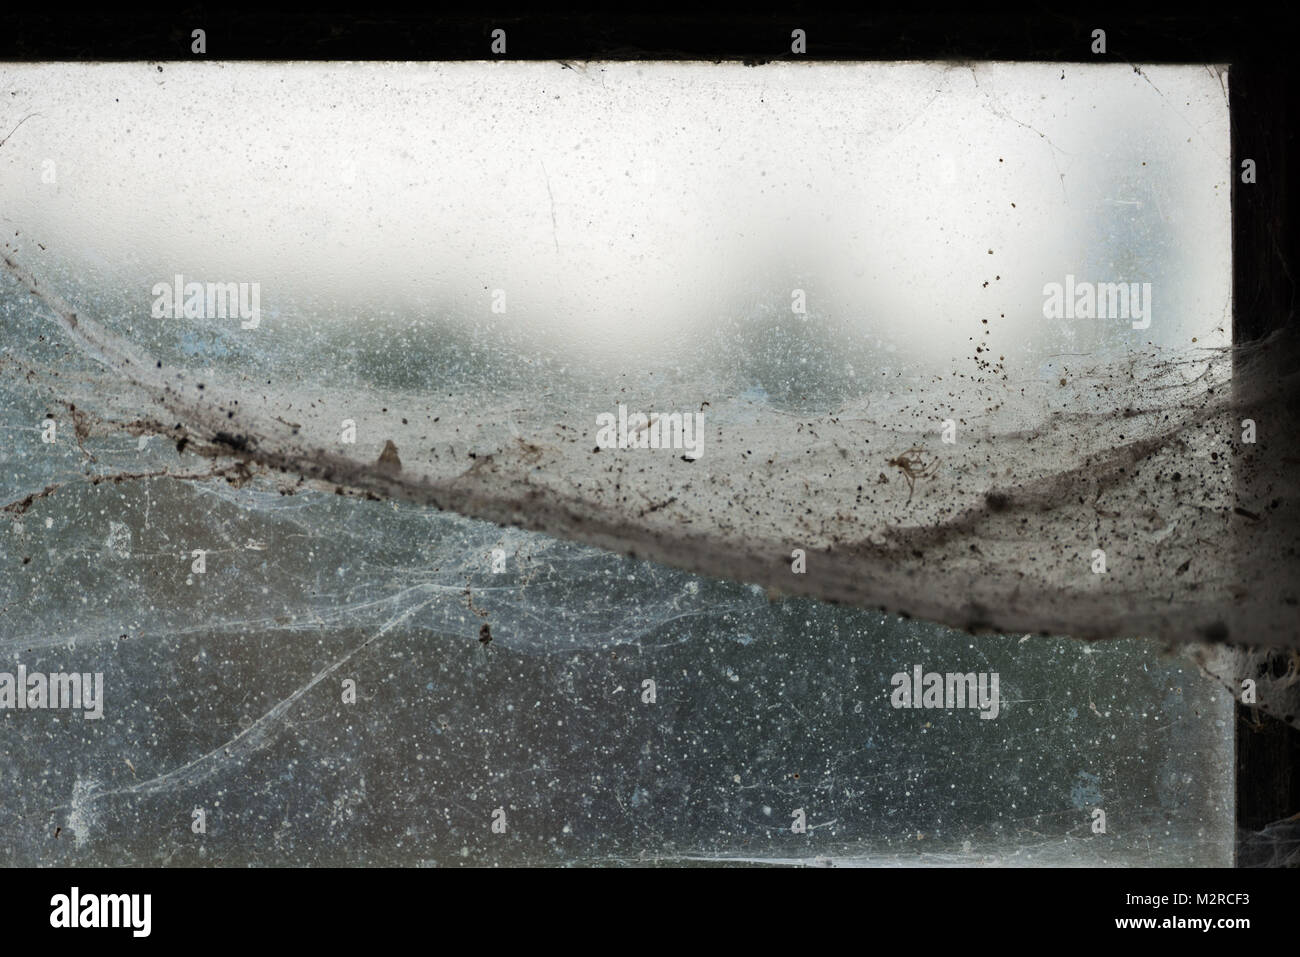 Spider webs at a window - Stock Image